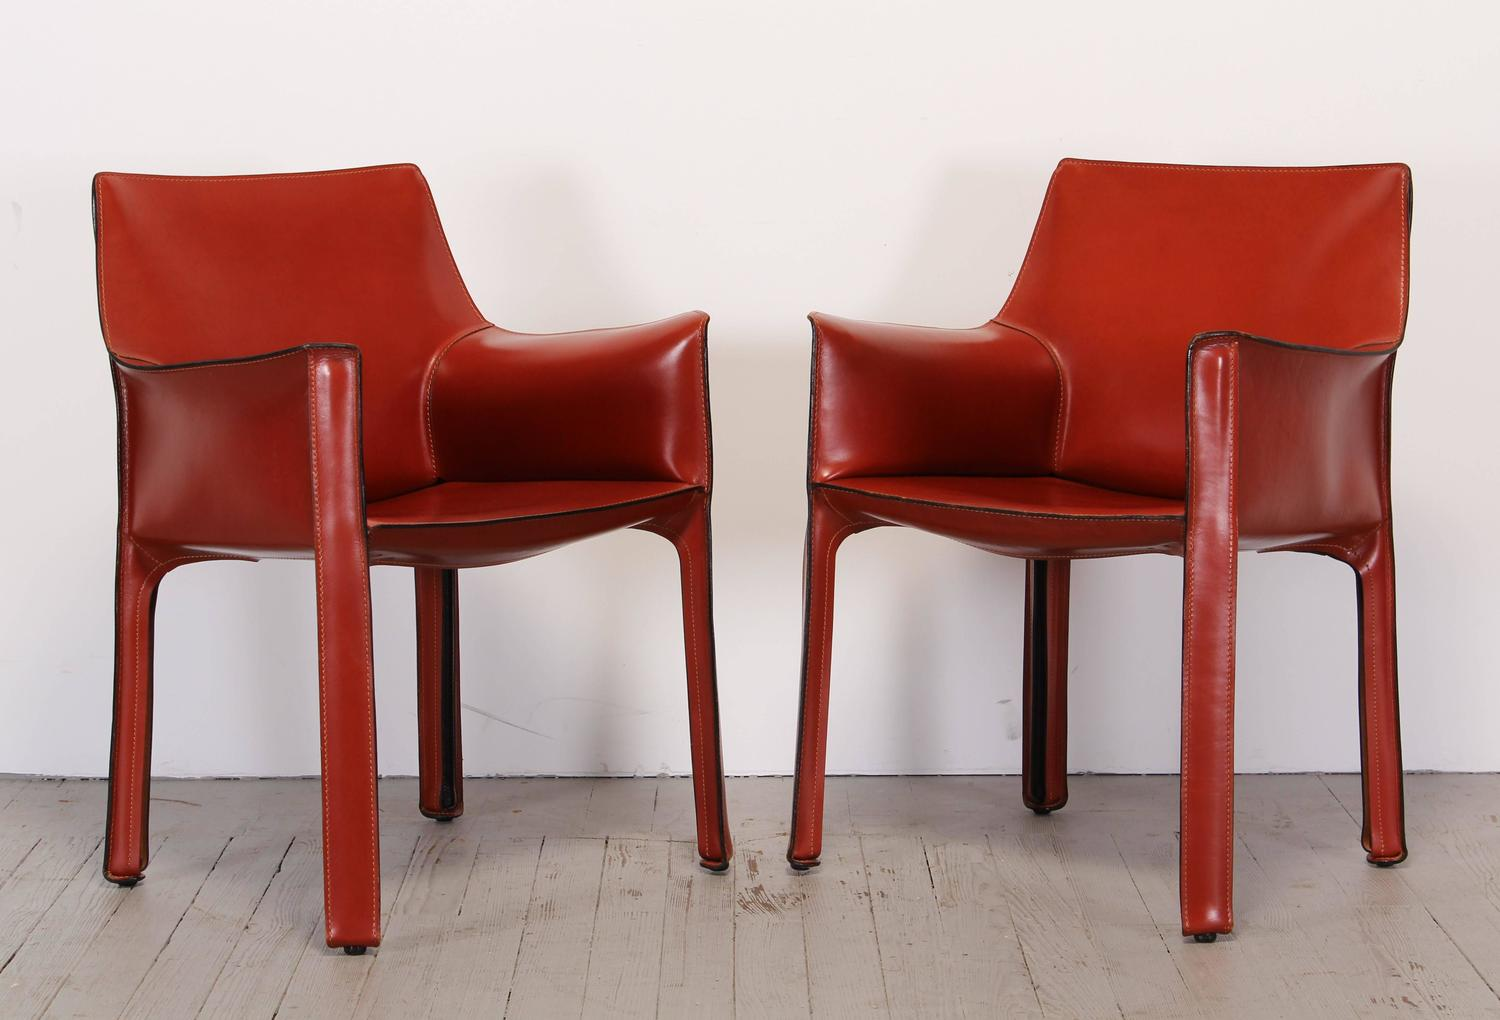 pair of 413 cab chairs by mario bellini by cassina at 1stdibs. Black Bedroom Furniture Sets. Home Design Ideas